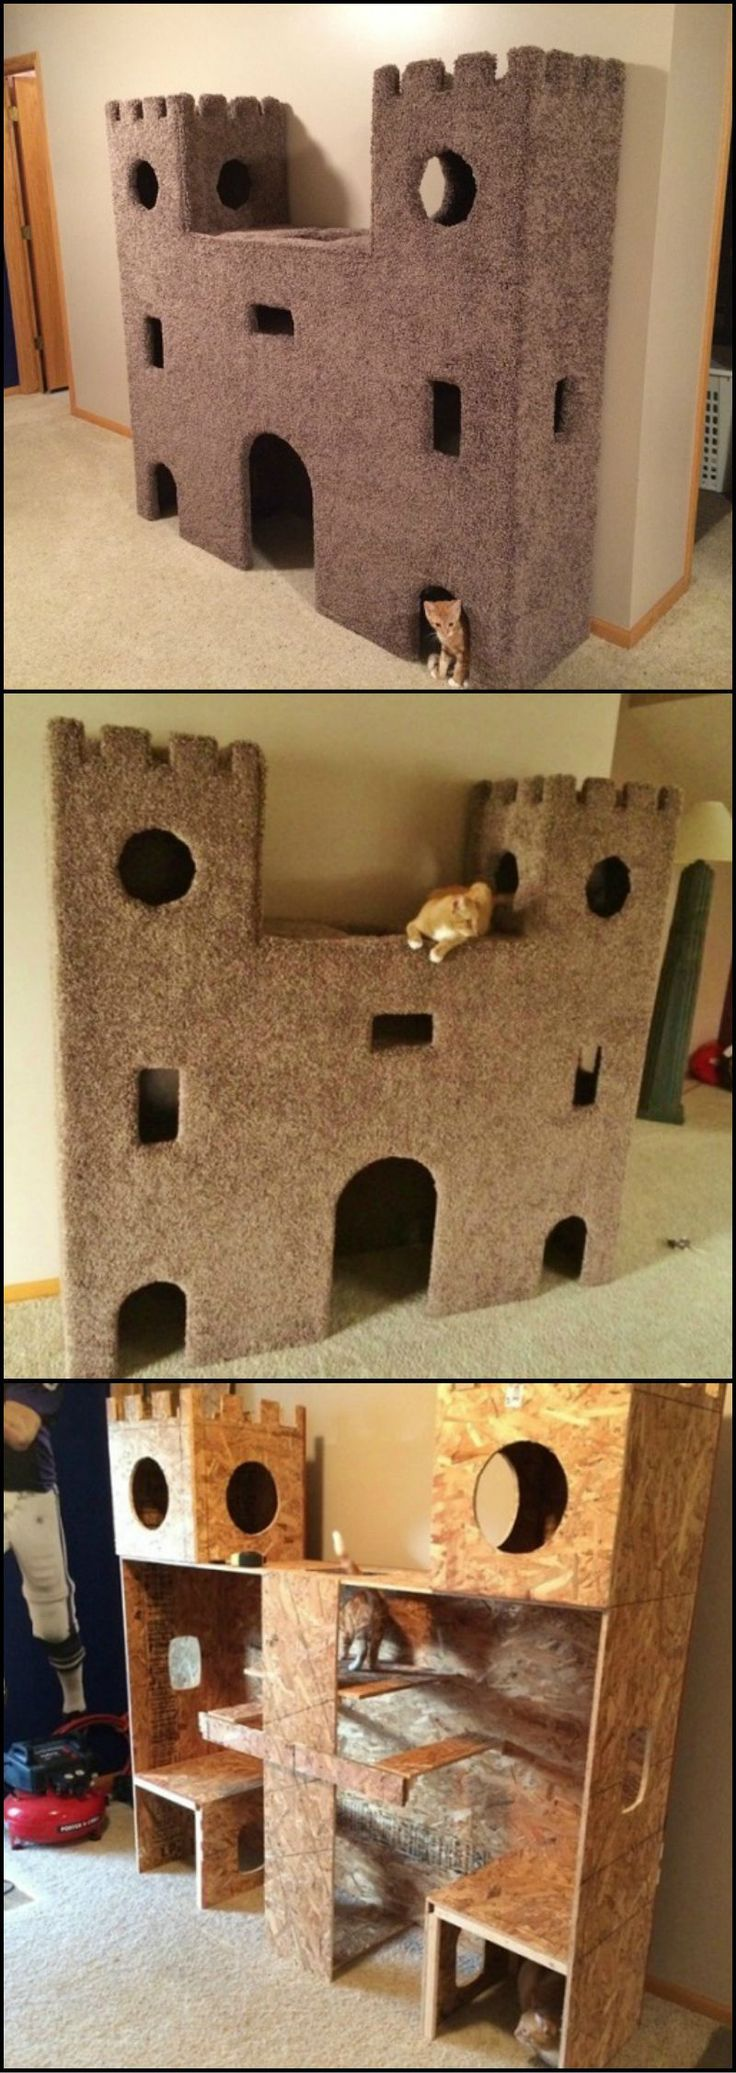 We found the ultimate cat castle! This is a great idea to keep our indoor cats busy. Discover more pet accommodations on our site now at theownerbuilderne... Is this something your pampered feline would love to have?